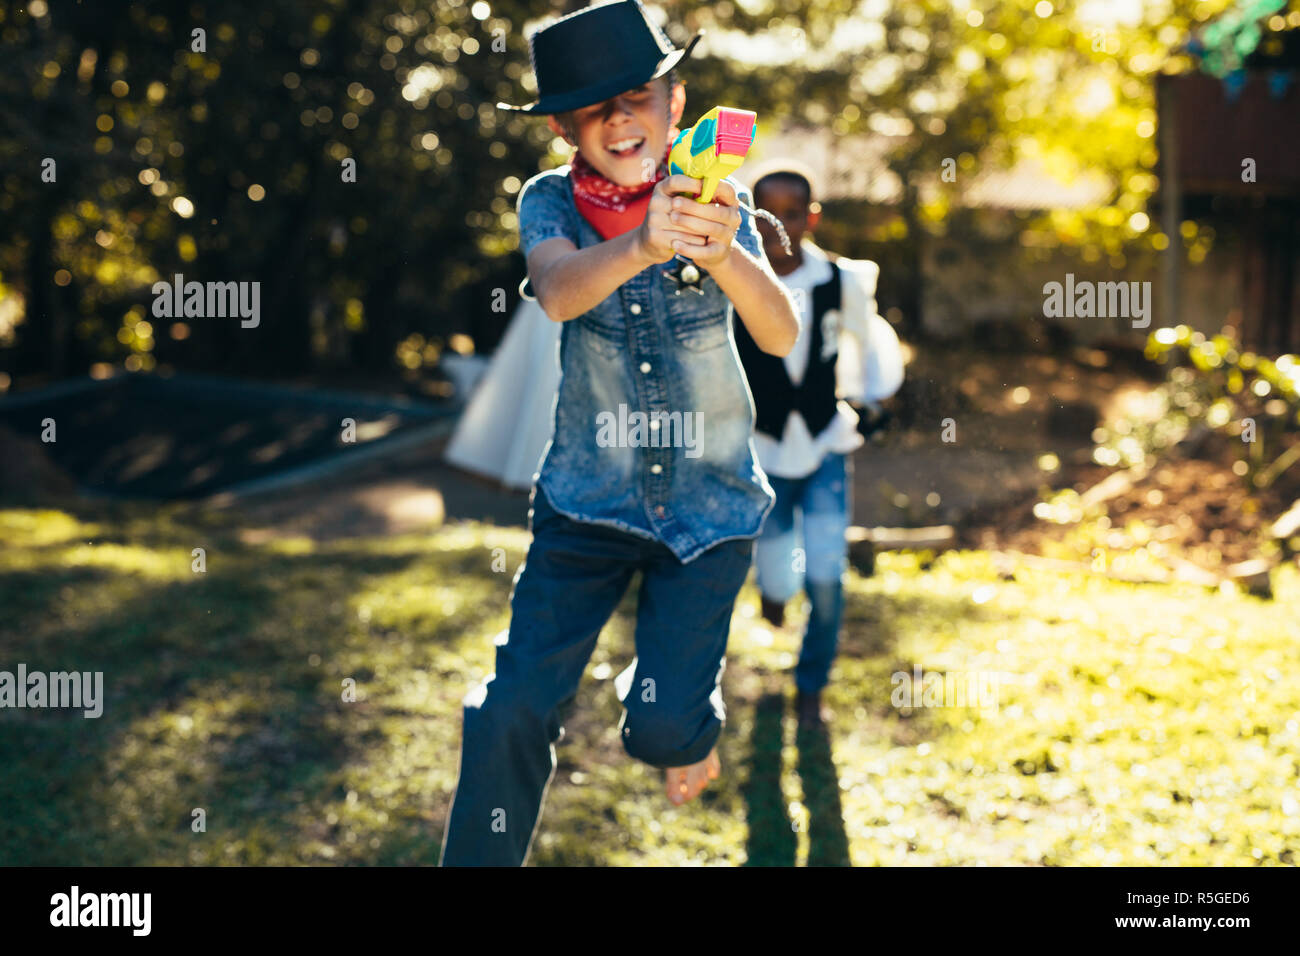 Boys outdoors having fun playing with water guns. Young boys in backyard playing with water pistols. - Stock Image